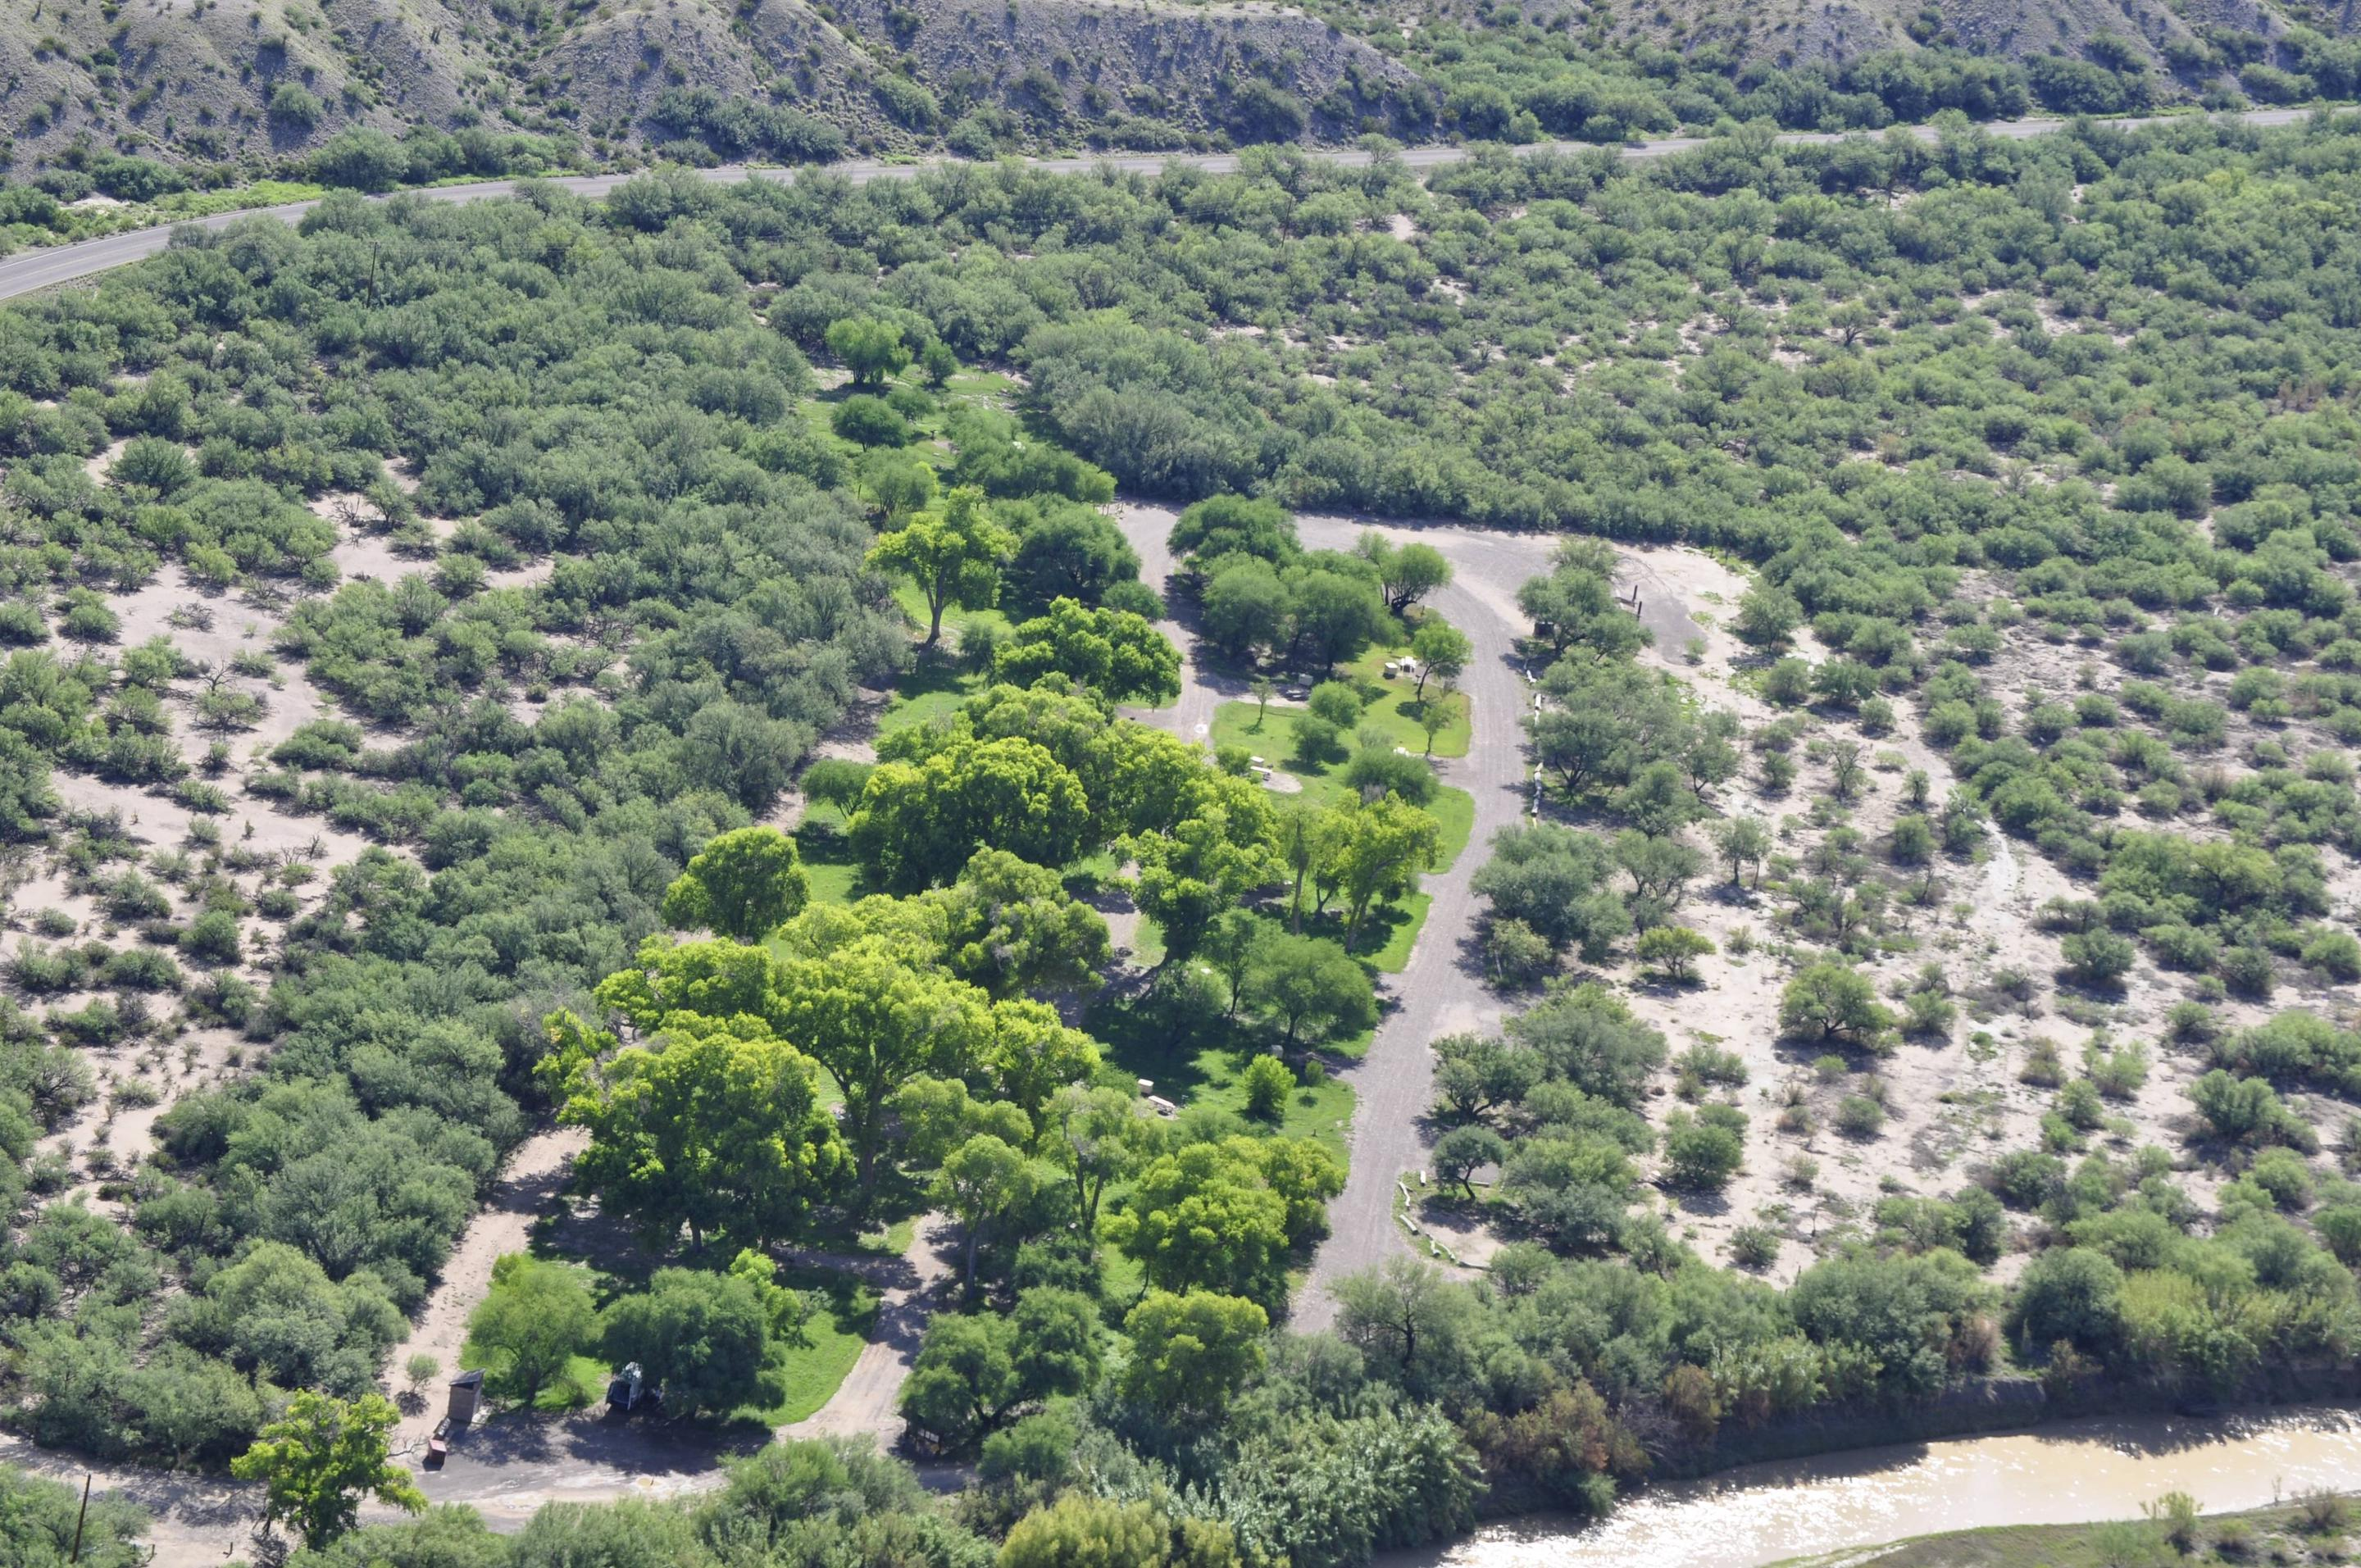 Aerial view of Cottonwood Campground, bright green trees amidst the low desert, riparian areaAerial view of Cottonwood Campground